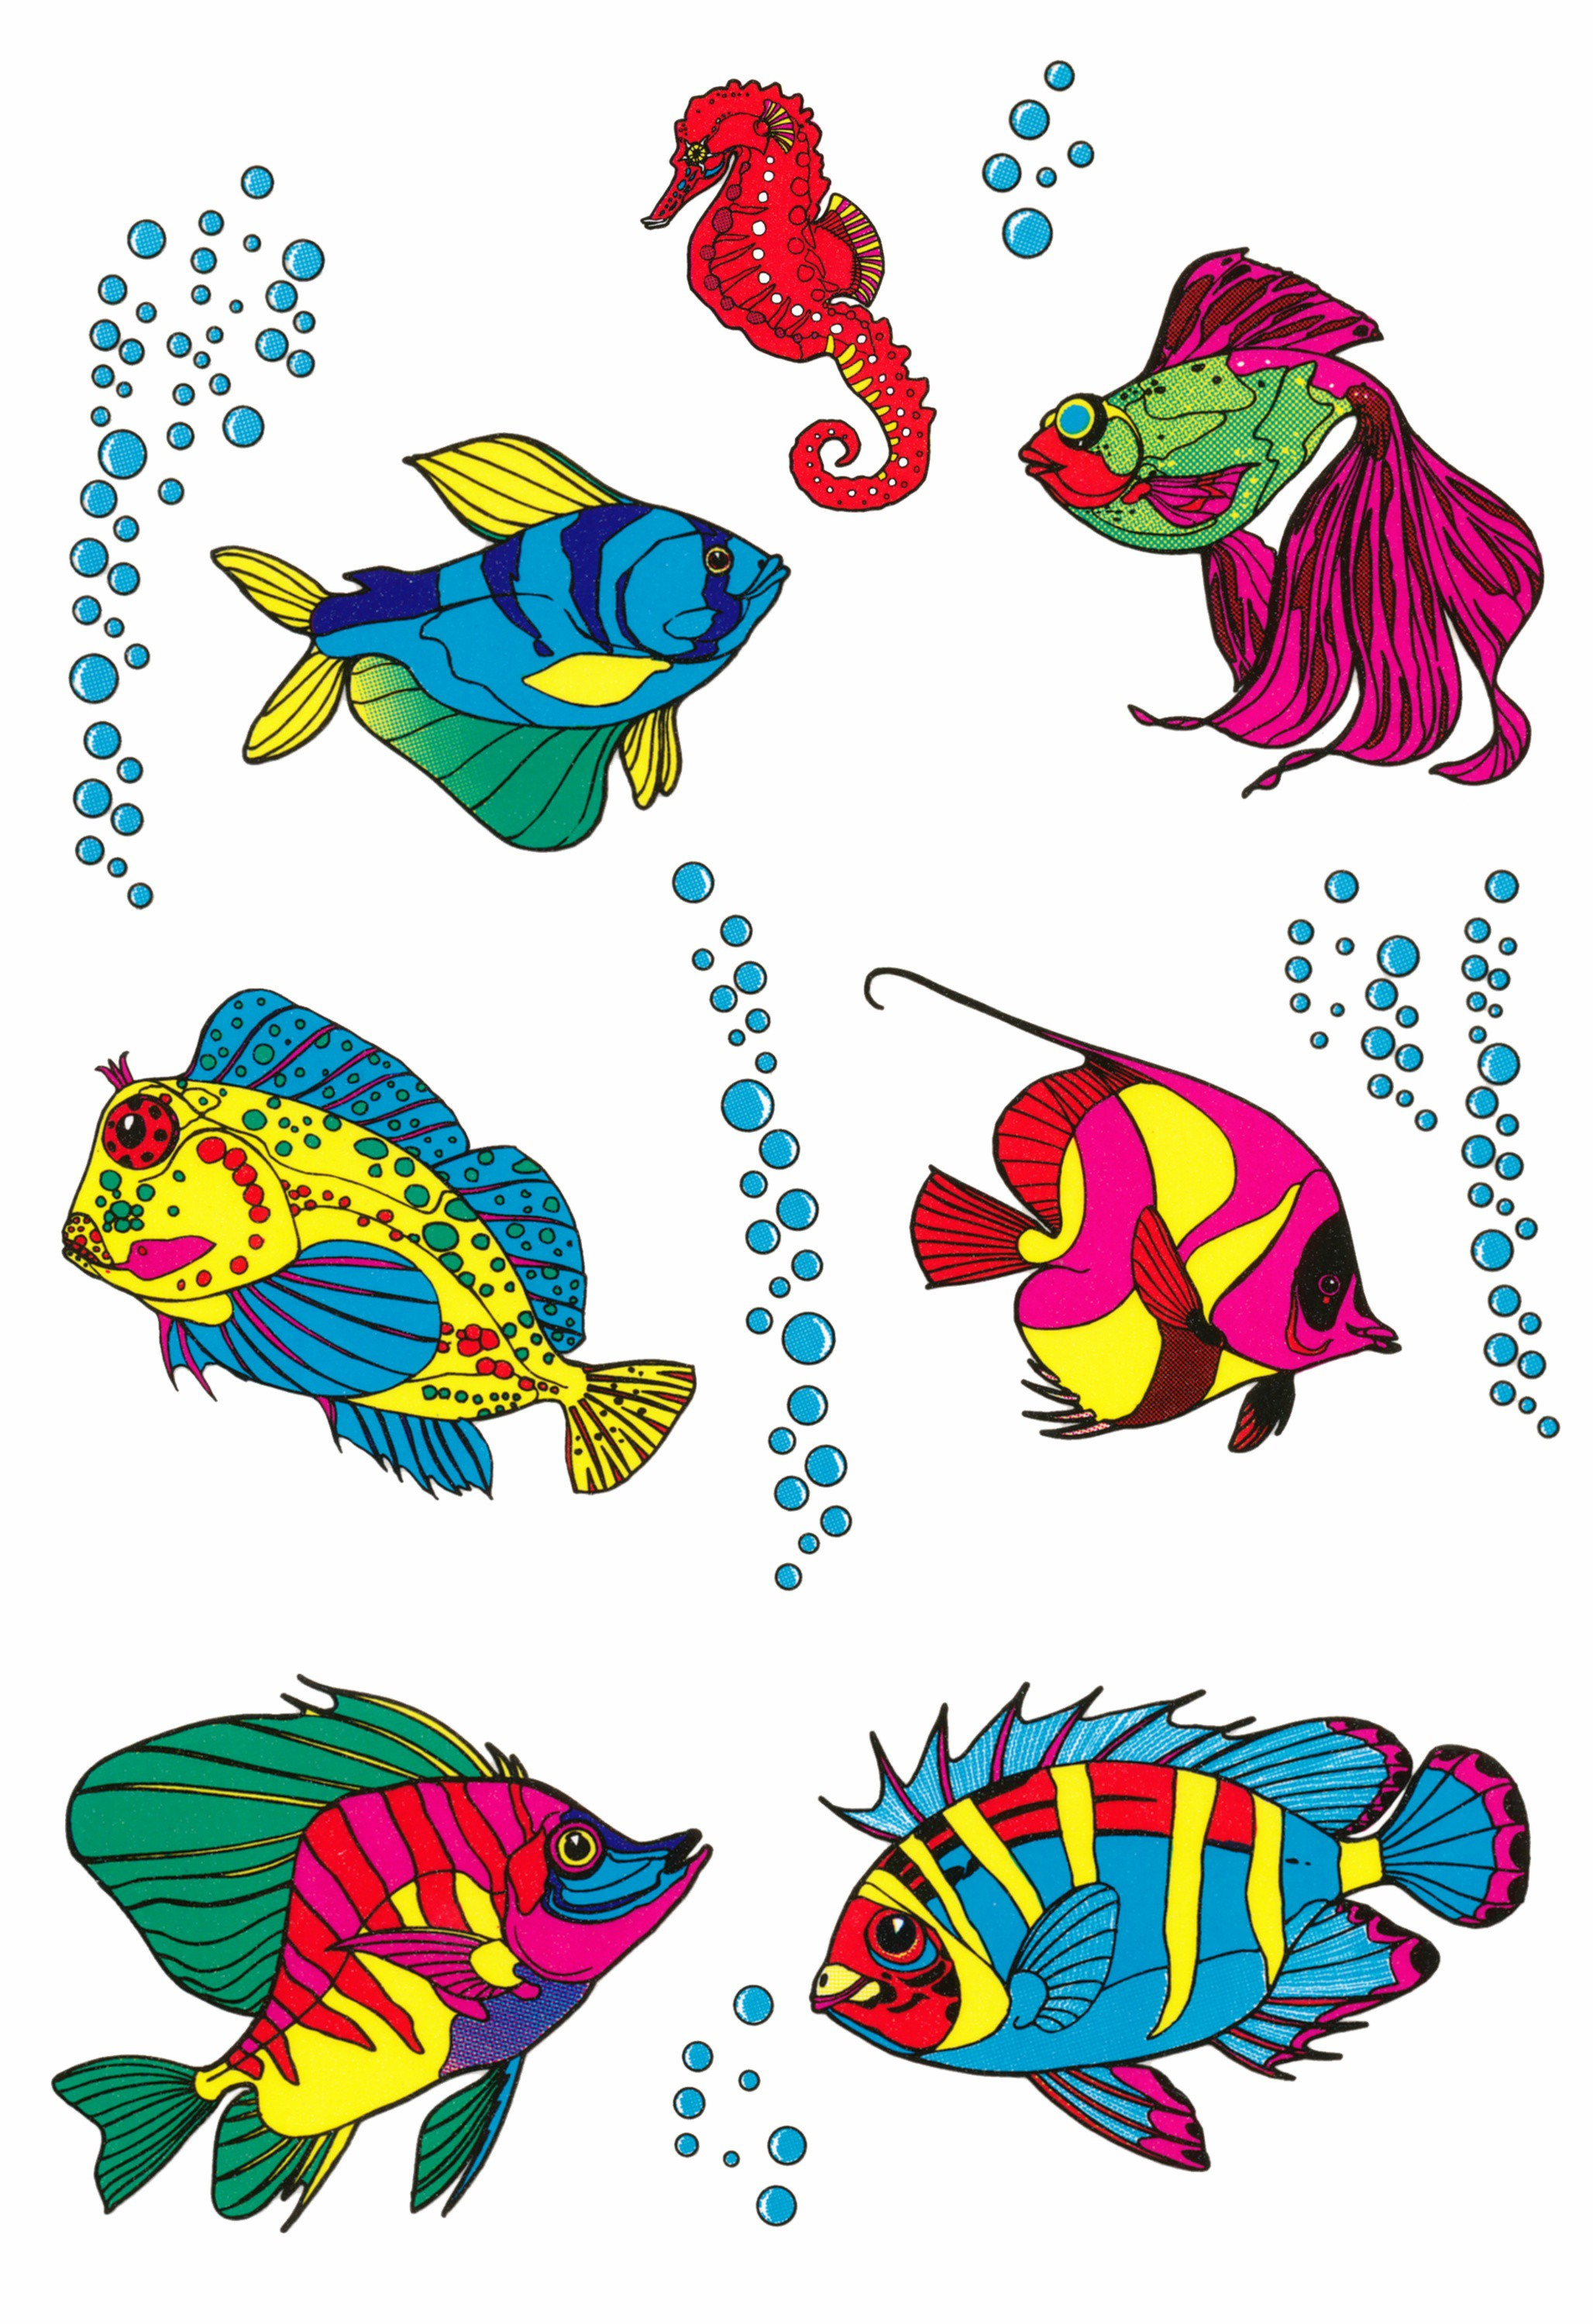 Sticker fishes 300 x 200 mm multicolored – Bild 1